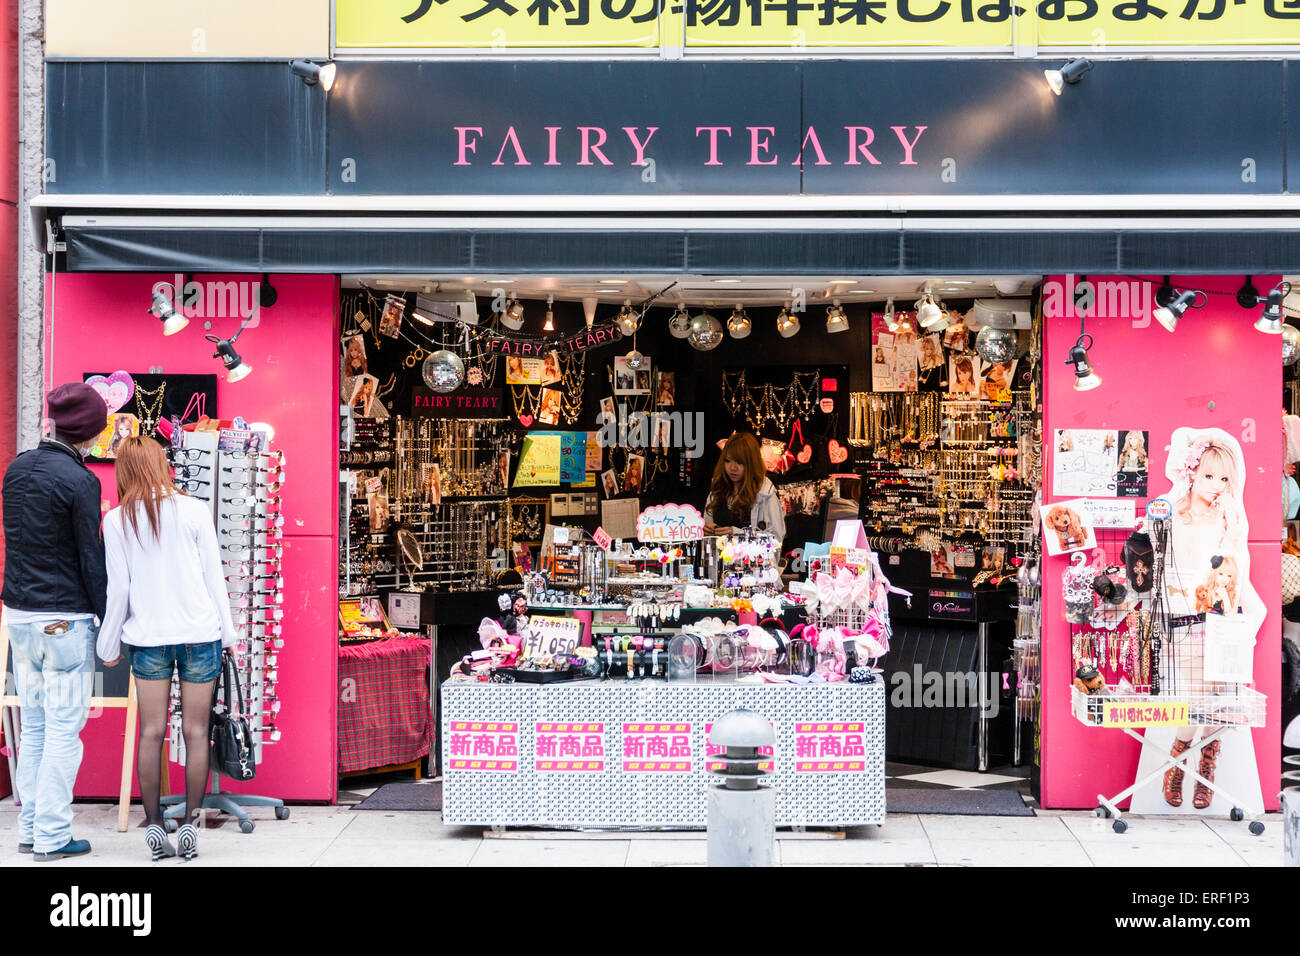 Japan, Osaka, Amerika-murai, 'Fairy Teary' boutique for accessories for women, young couple outside looking - Stock Image